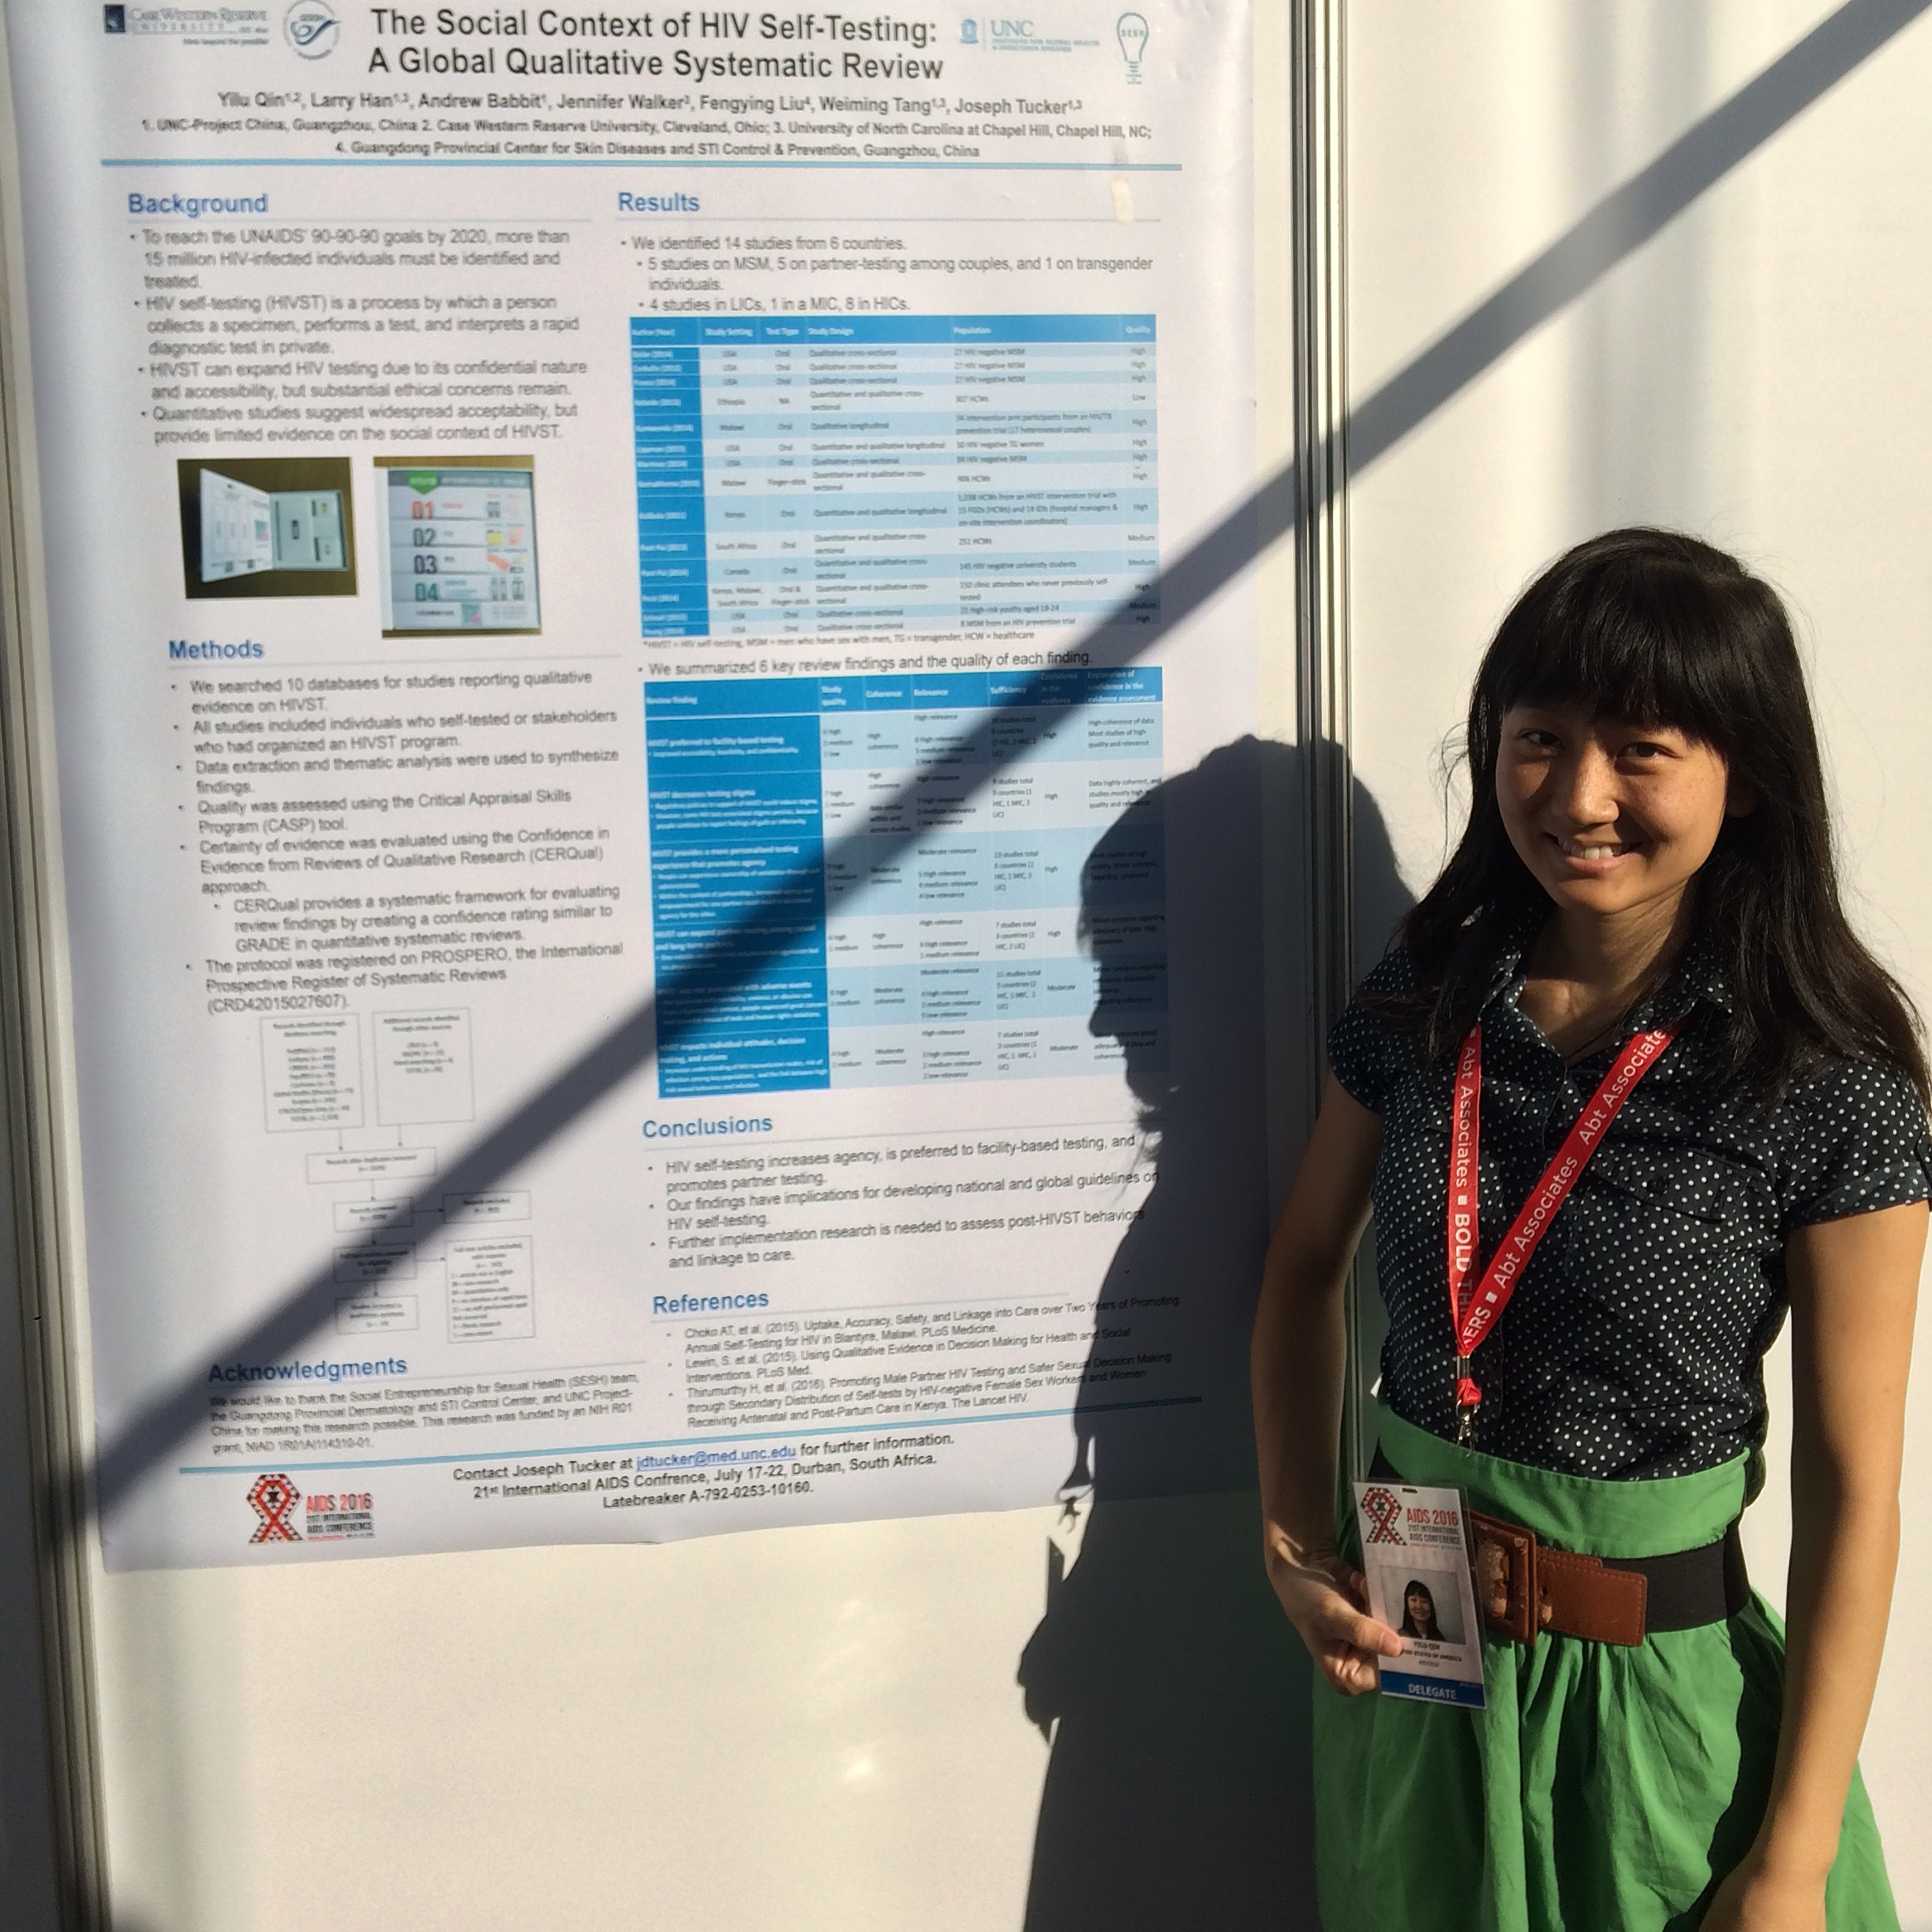 Trainee presenting research